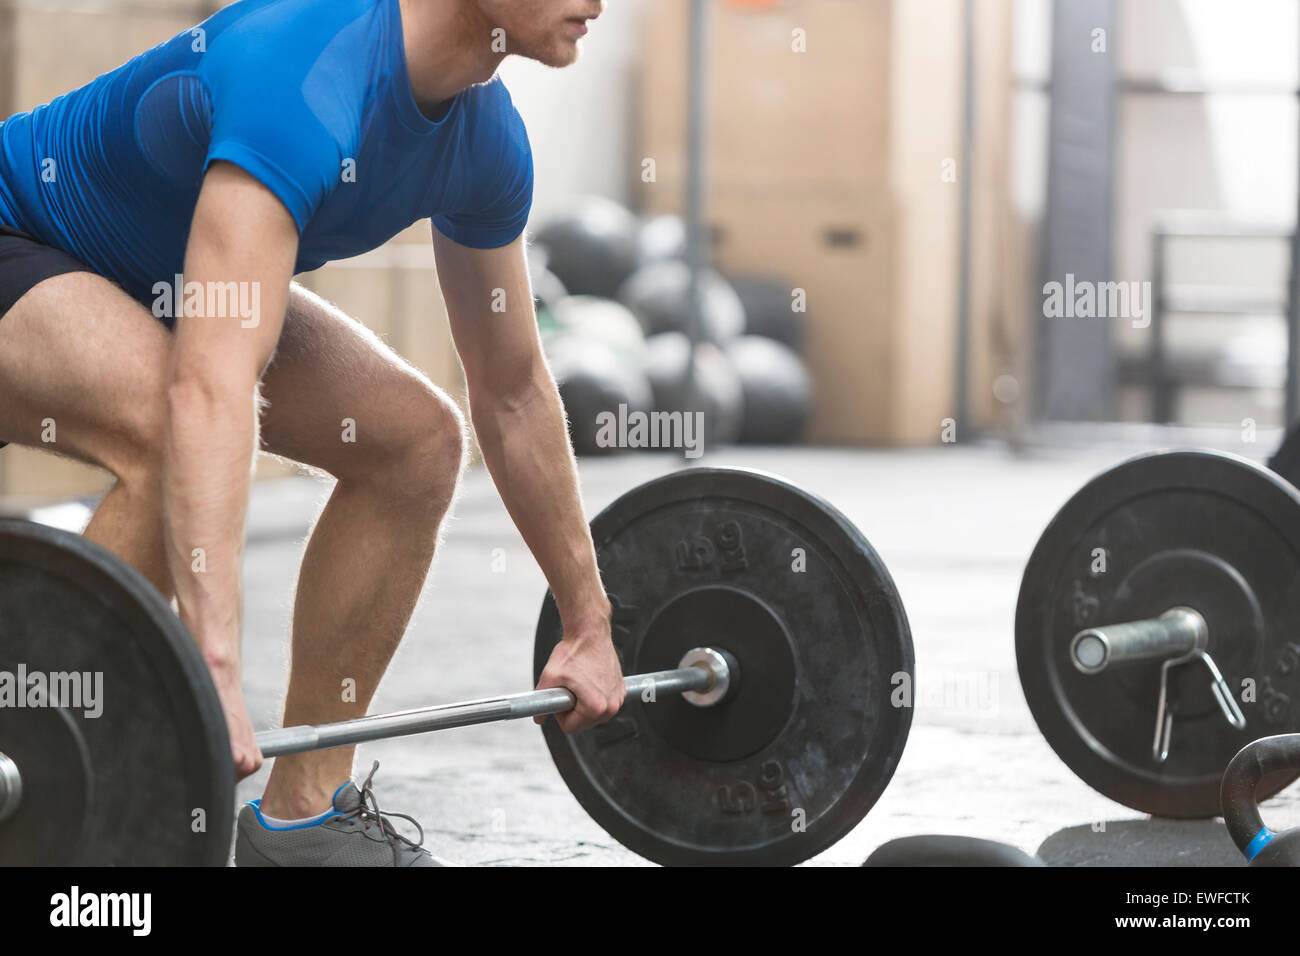 Low section of dedicated man lifting barbell in crossfit gym - Stock Image